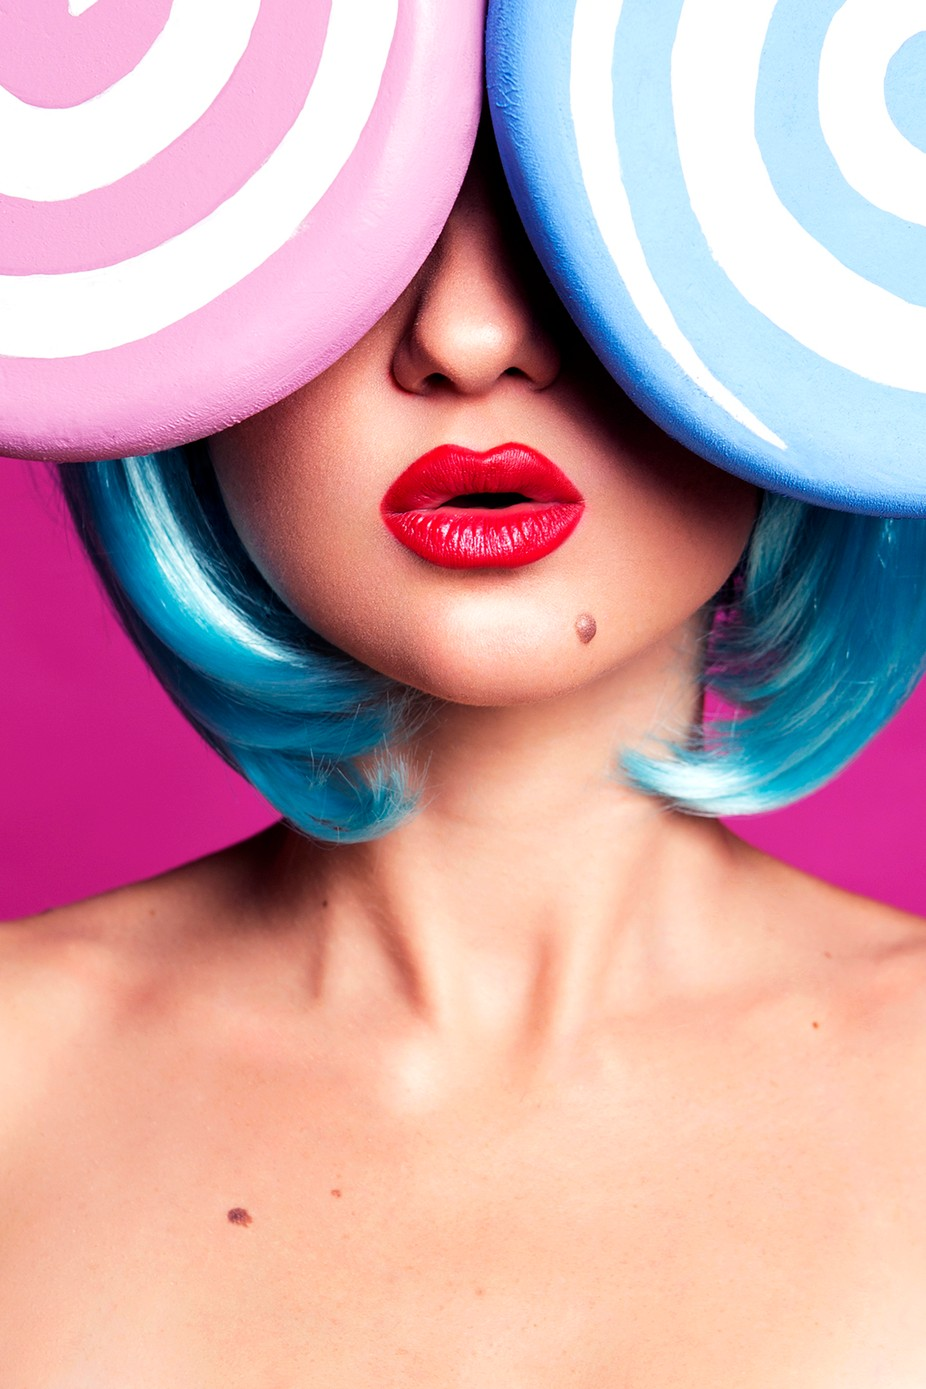 Candy Girl by AnnaDemy - Image Of The Month Photo Contest Vol 34